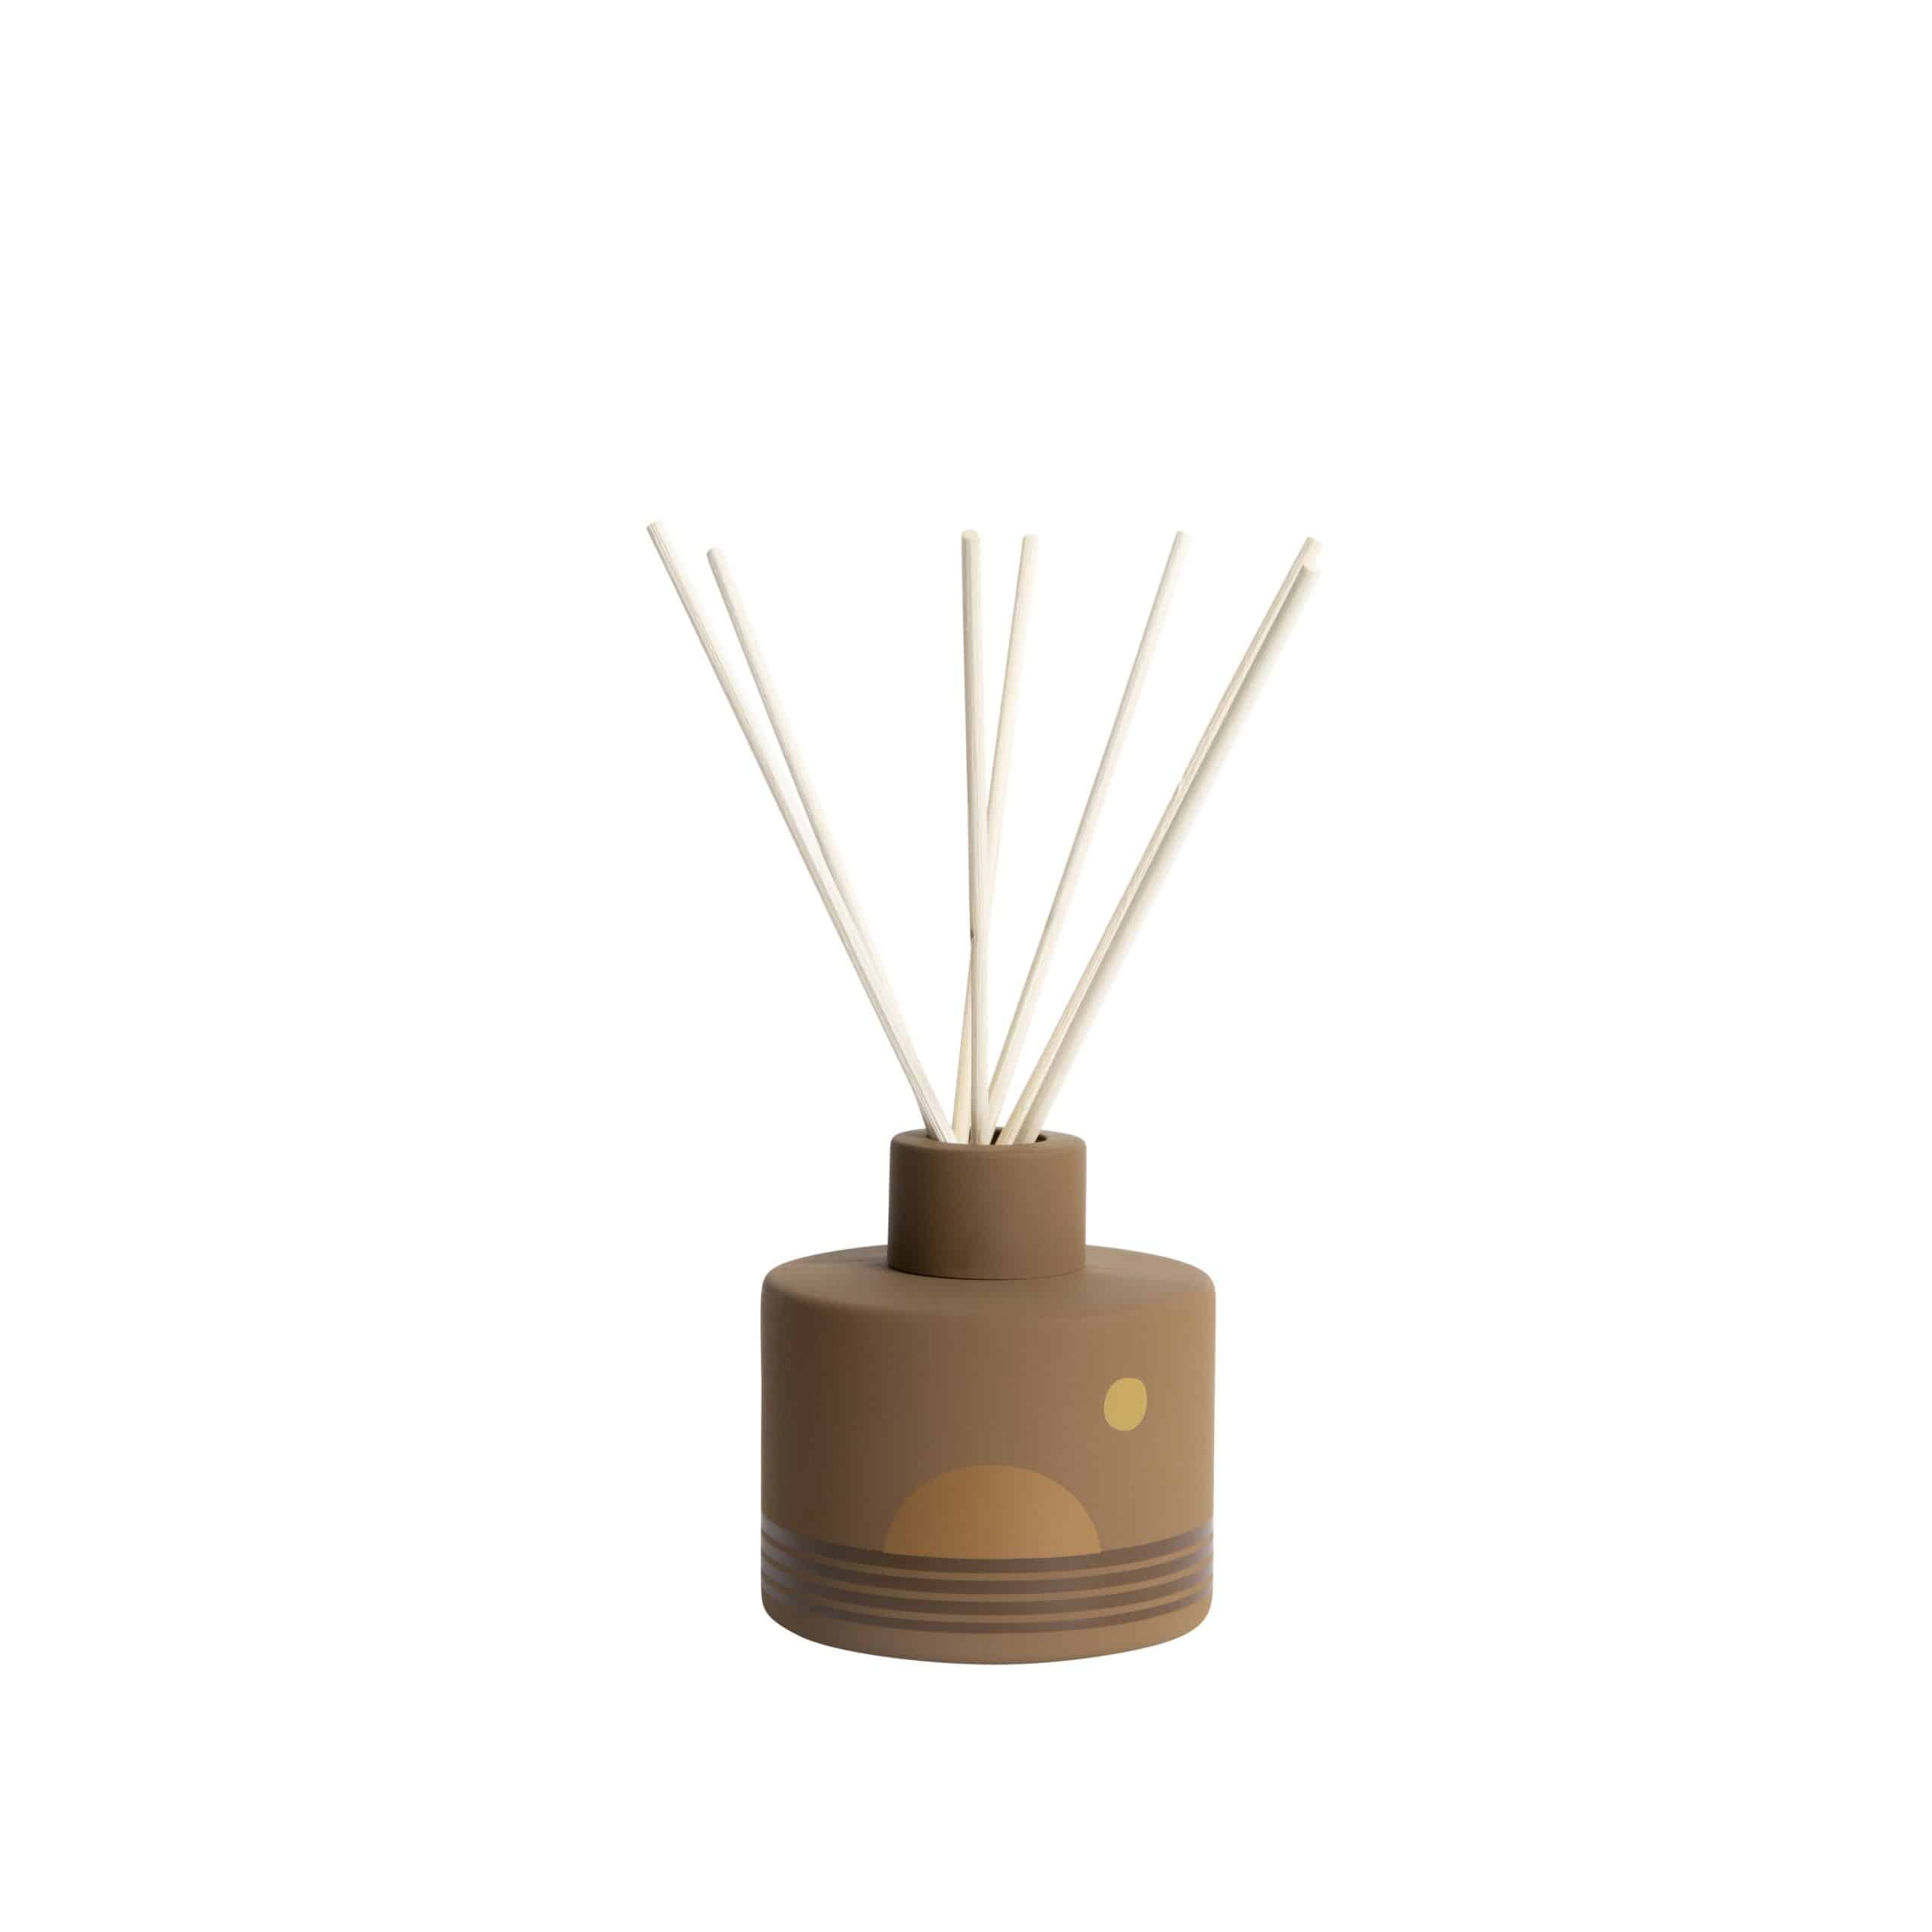 Dusk – 3.75 oz Sunset Reed Diffuser